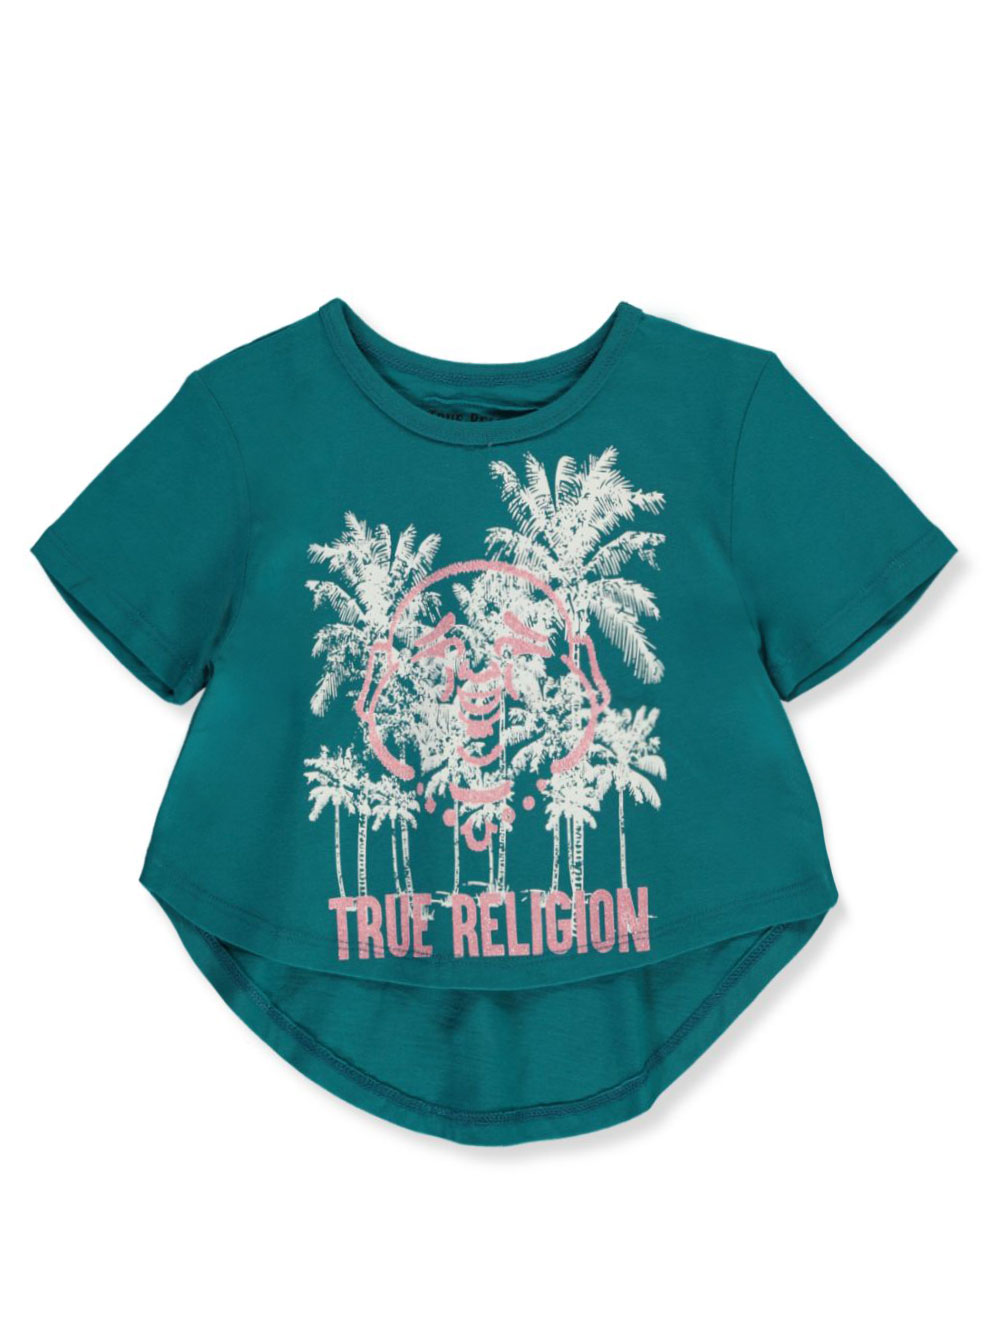 Girls Teal T-Shirts